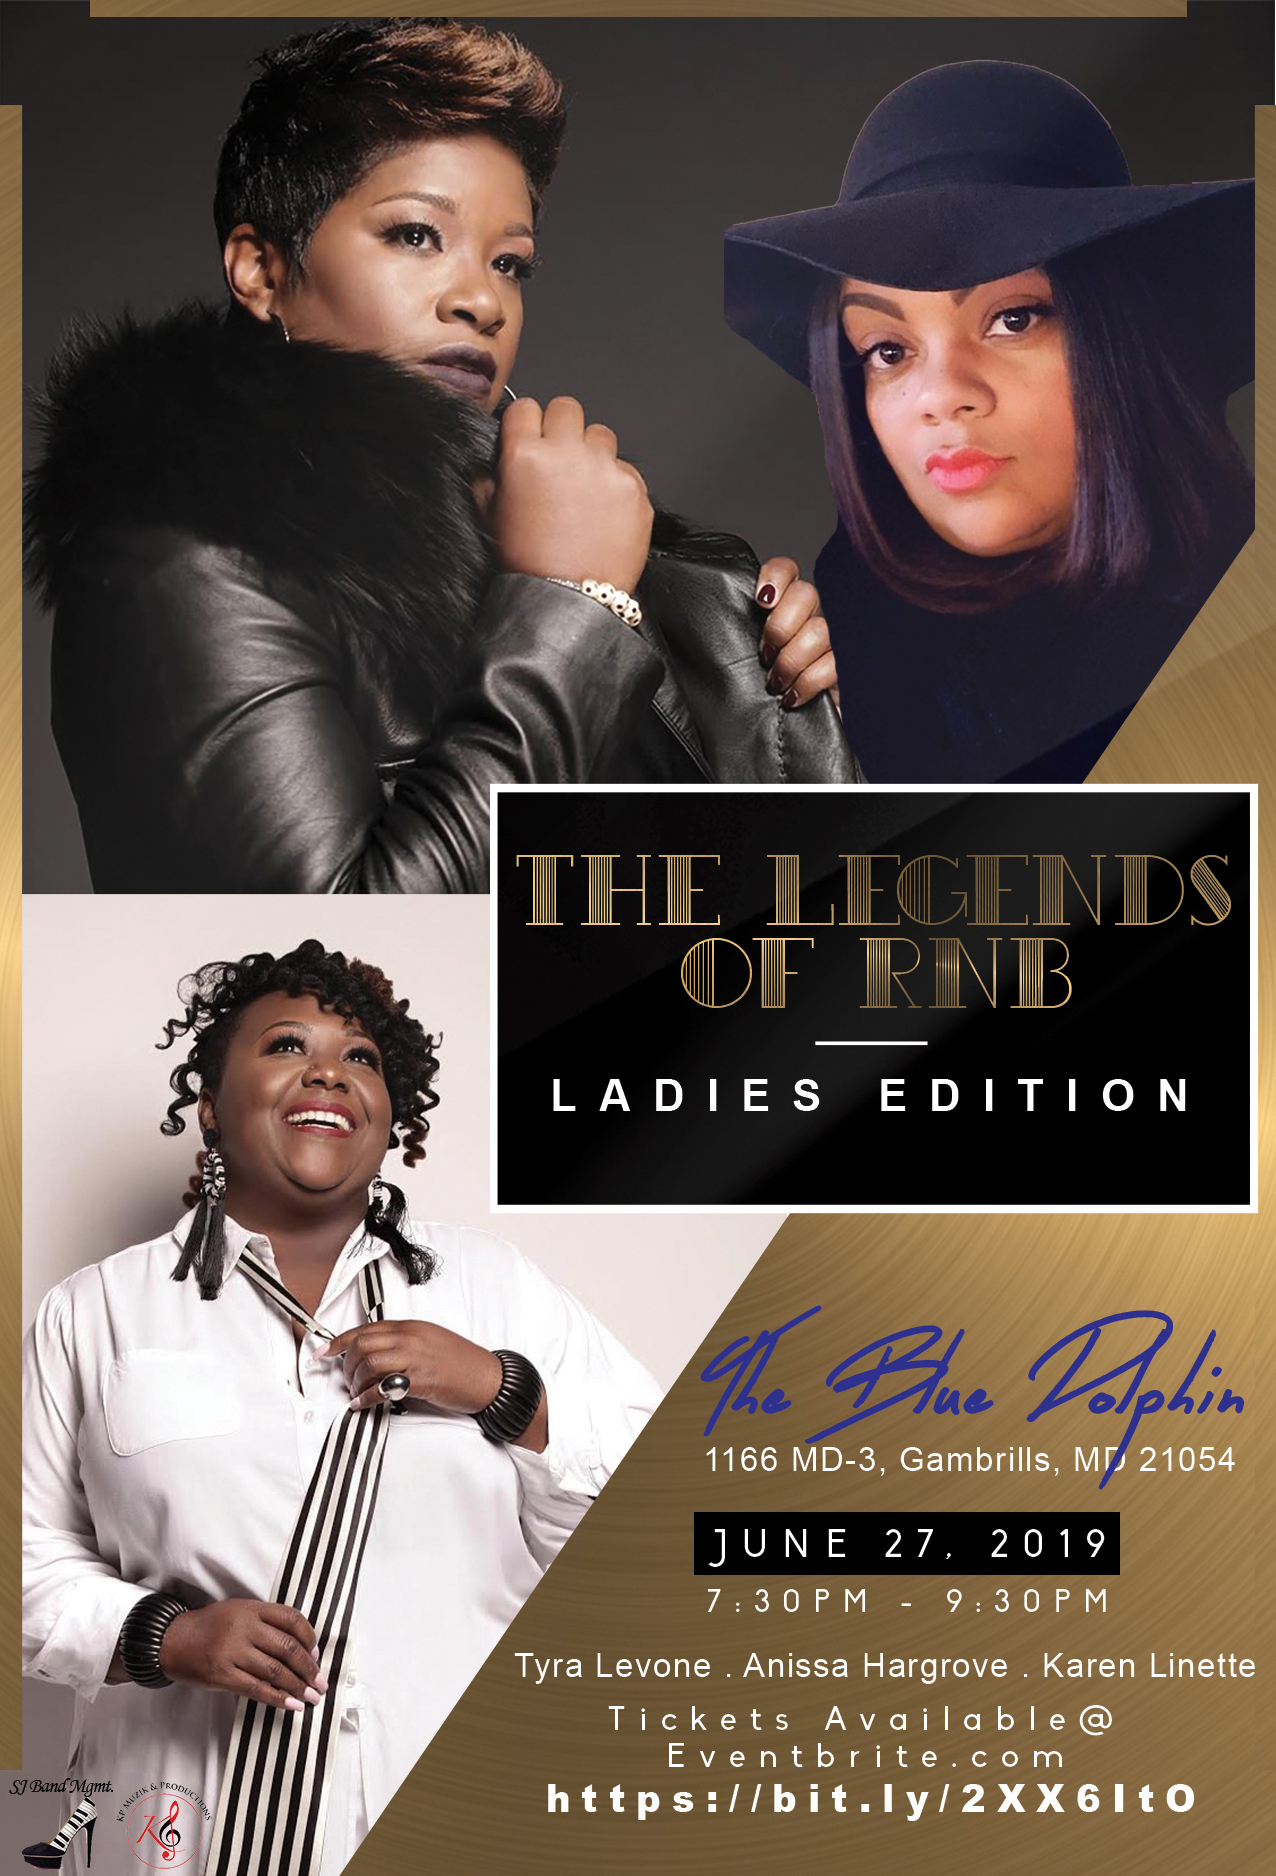 Legends of R&B Ladies Edition flyer